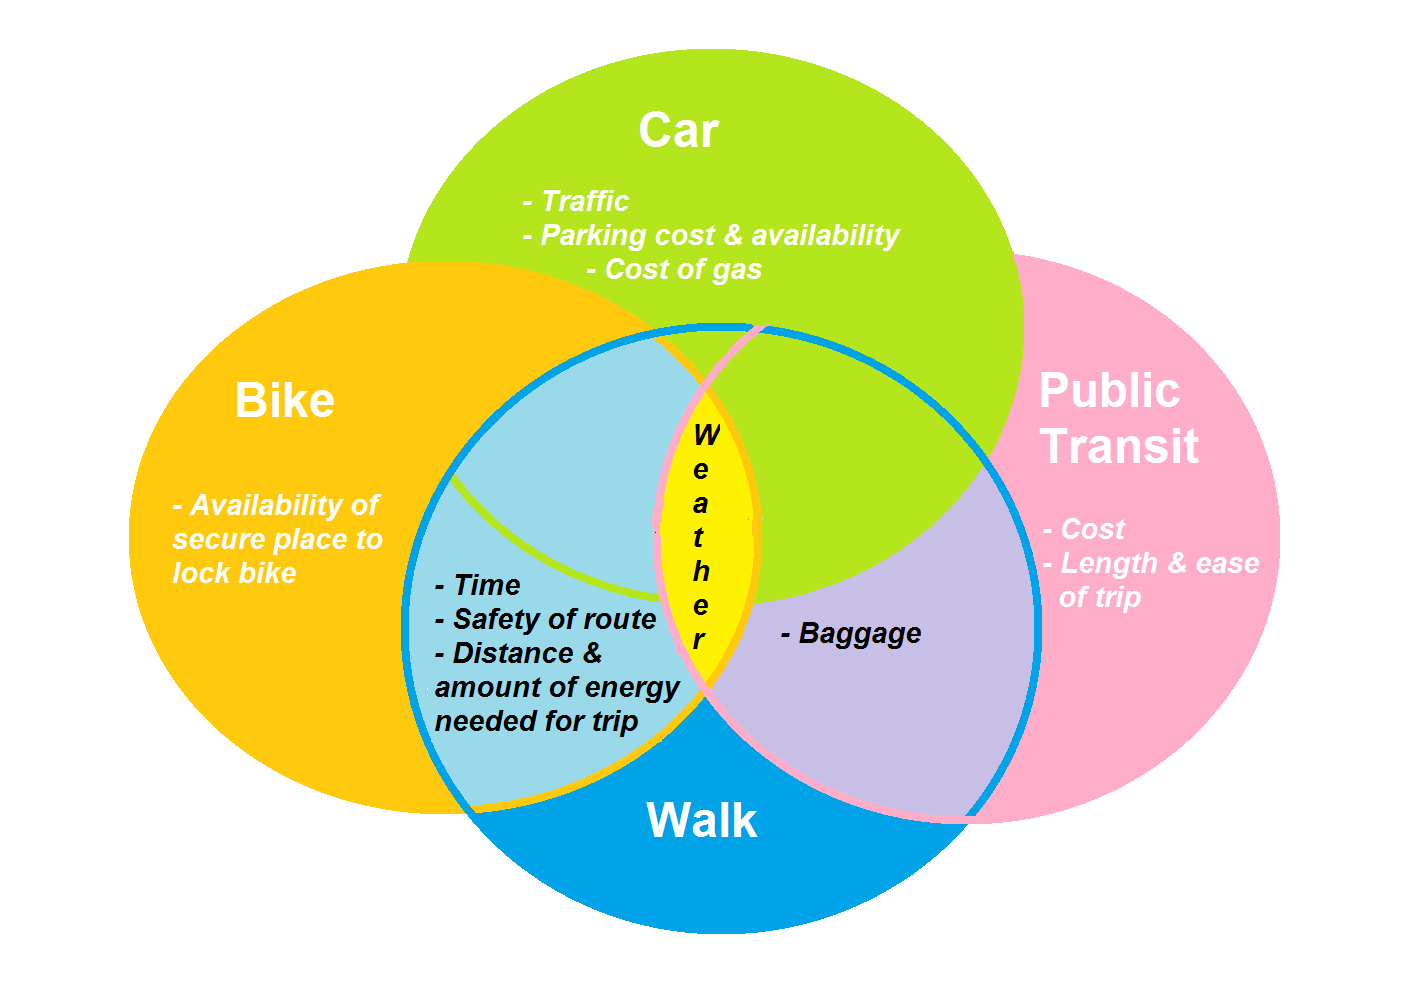 https://thecityspace.files.wordpress.com/2014/04/modes-of-transport-venn-diagram.png